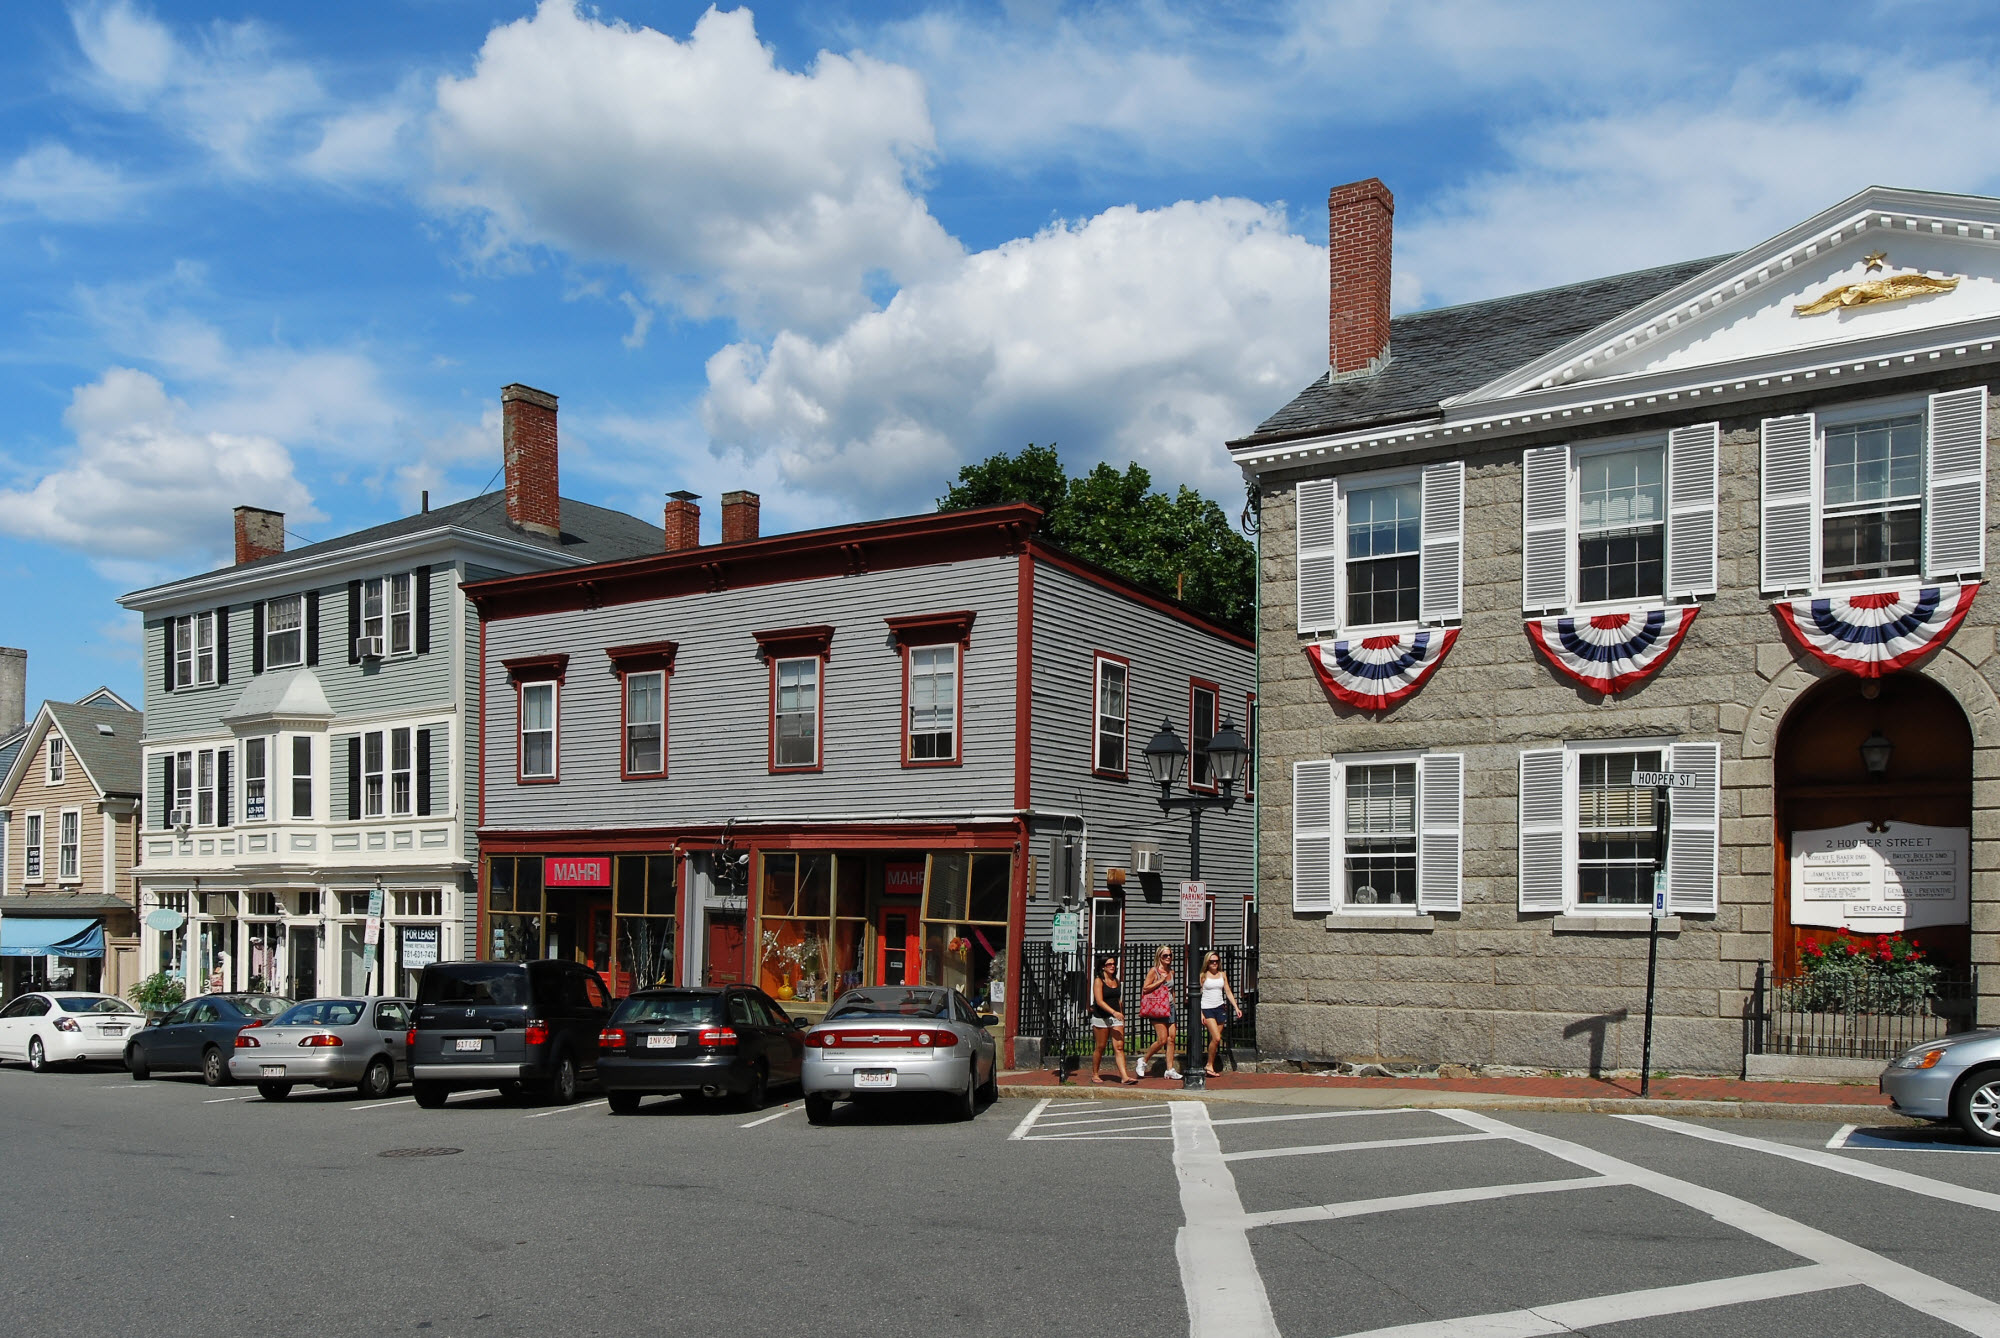 Historic Massachusetts town